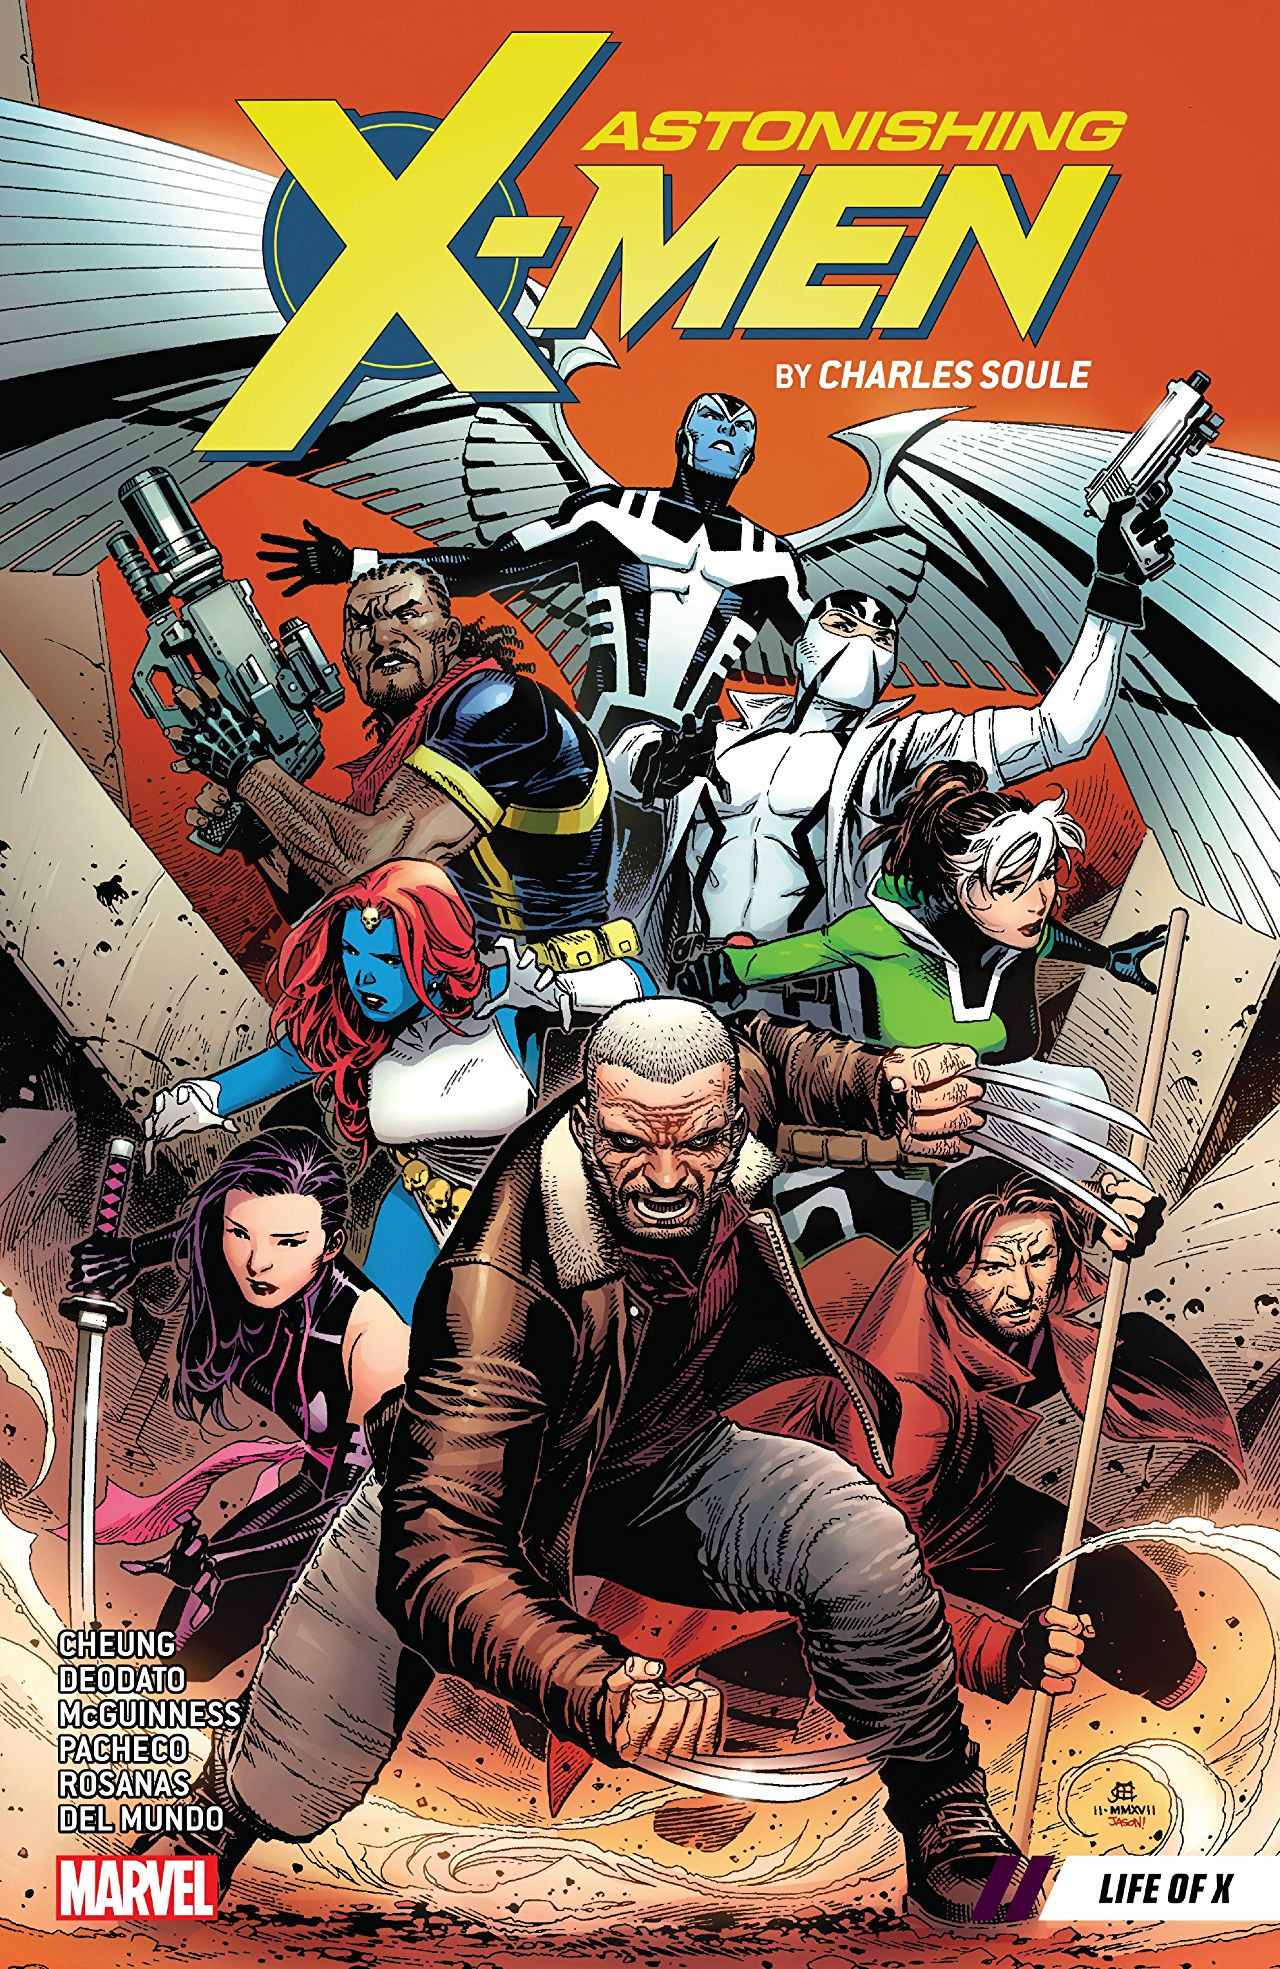 Astonishing X-Men by Charles Soule Vol 1 1: Life of X